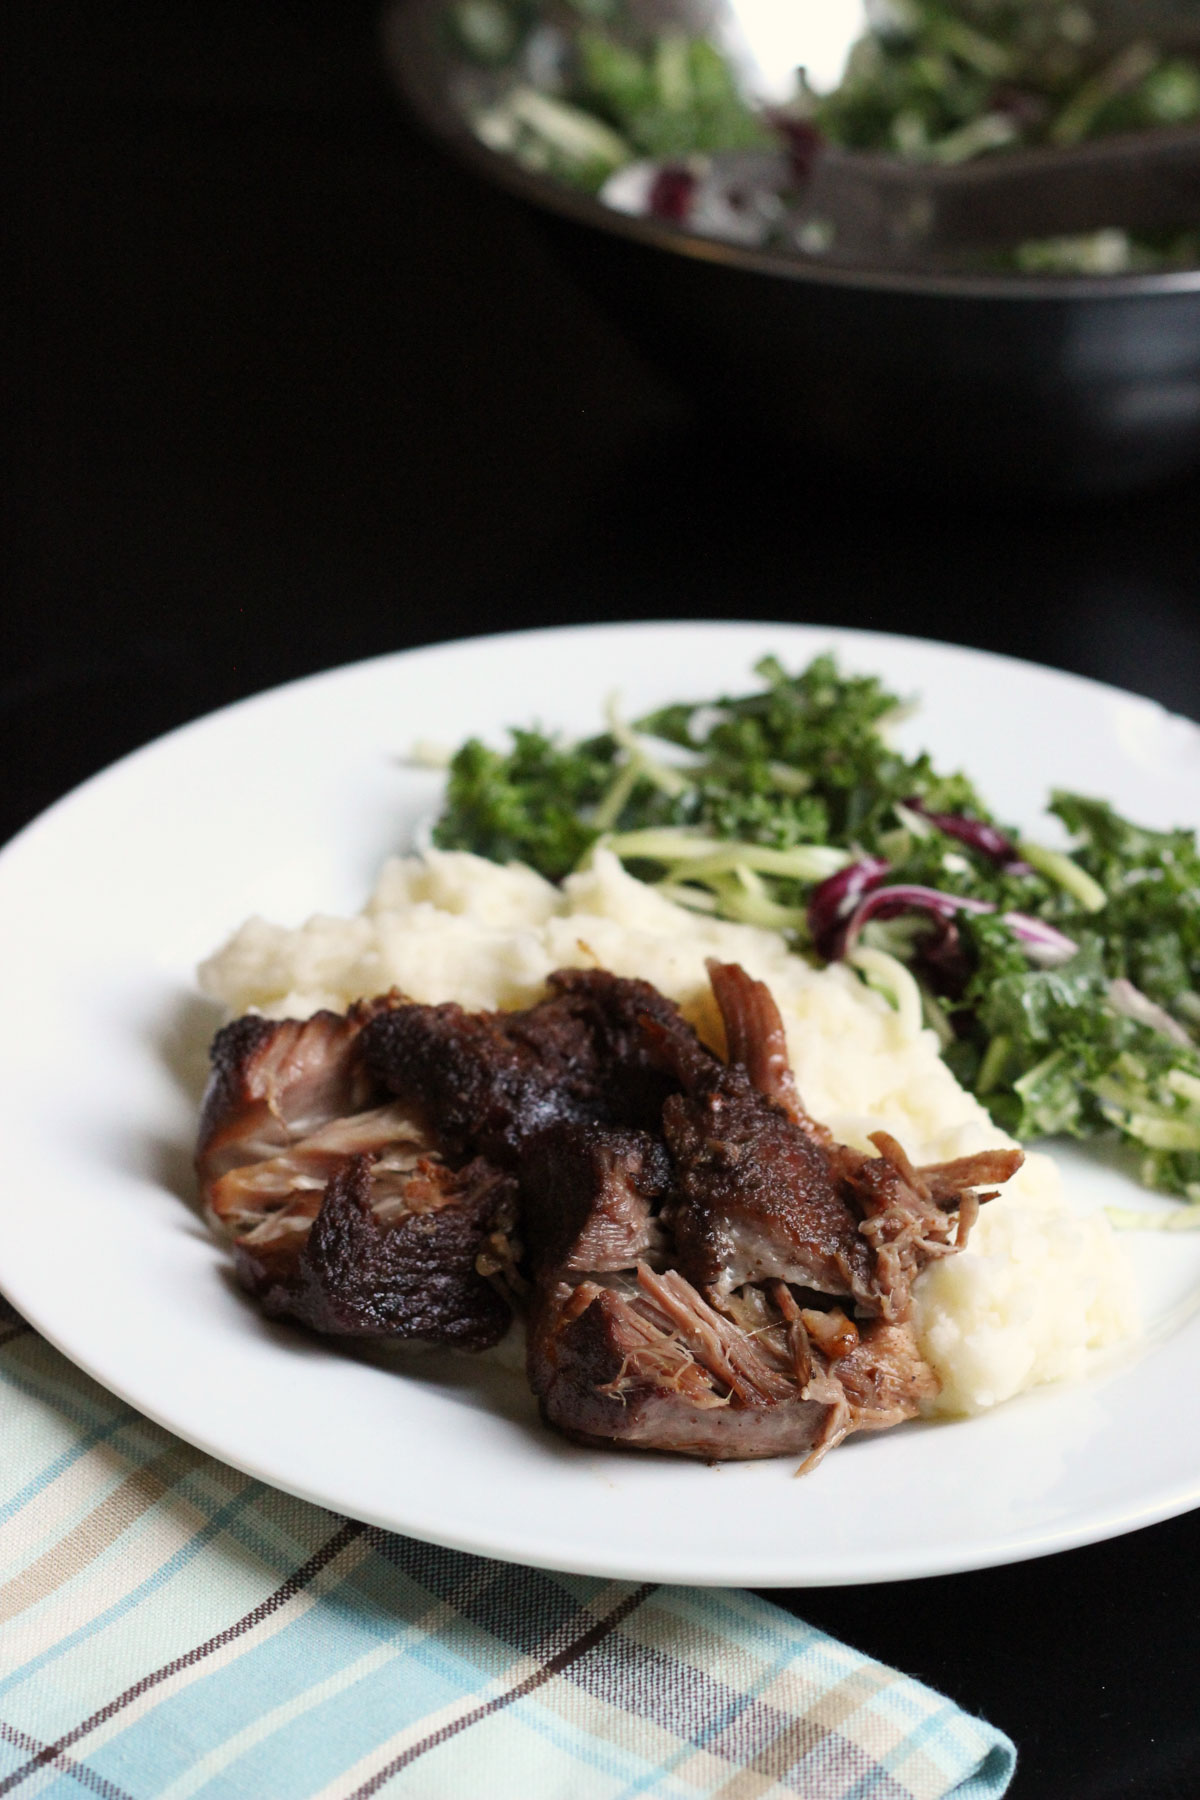 plate of pork, mashed potatoes, and kale